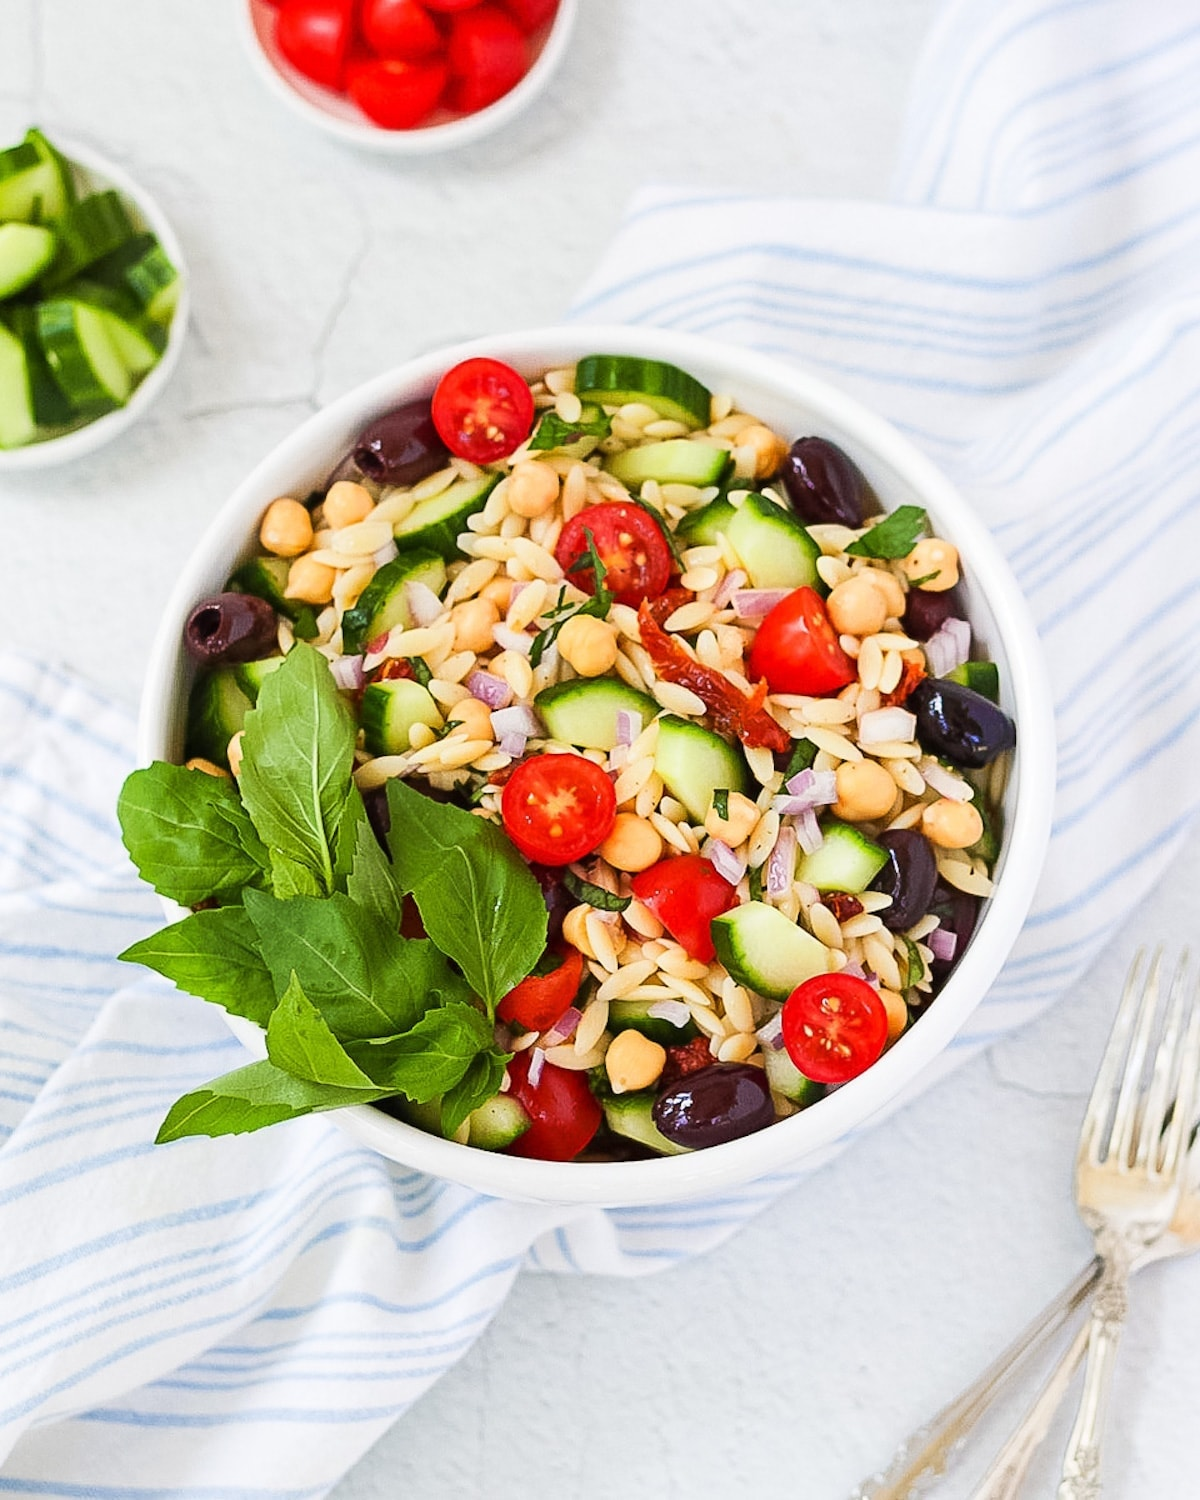 Picture of orzo salad in a white bowl garnished with a handful of fresh green basil leaves.